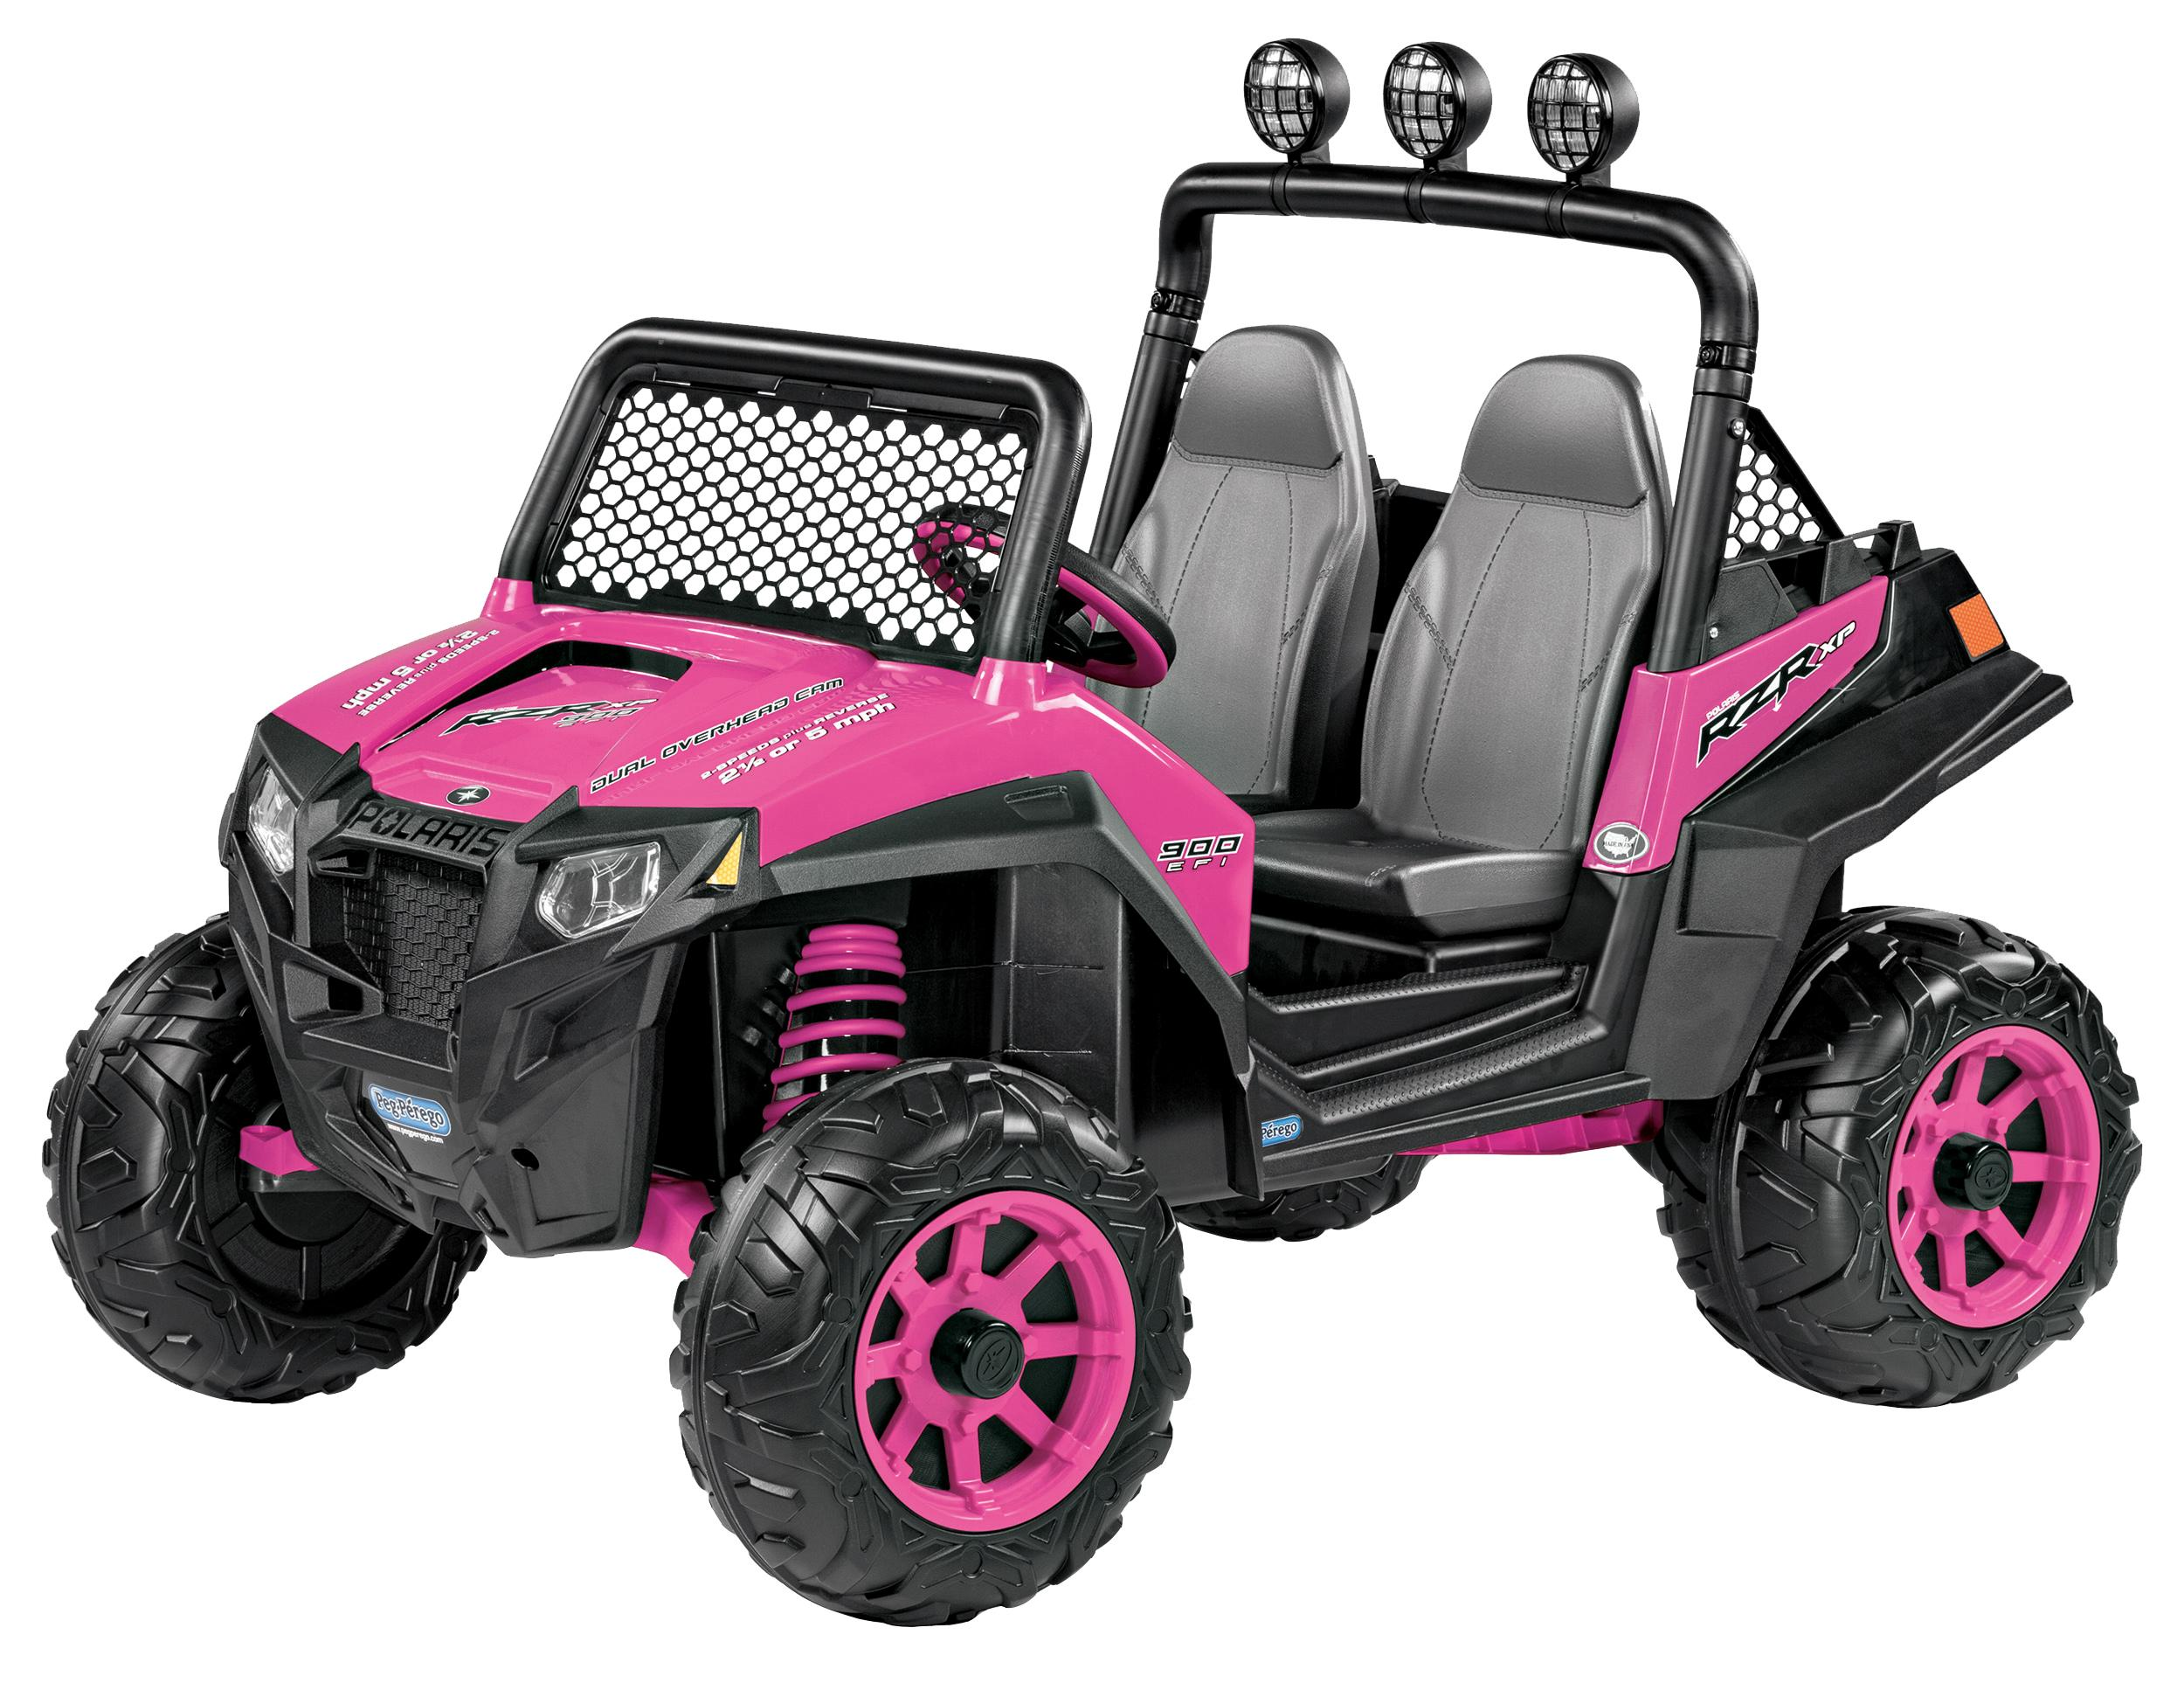 Kid Ride Ons Explode With Cars Tractors Monster Trucks Washington Times